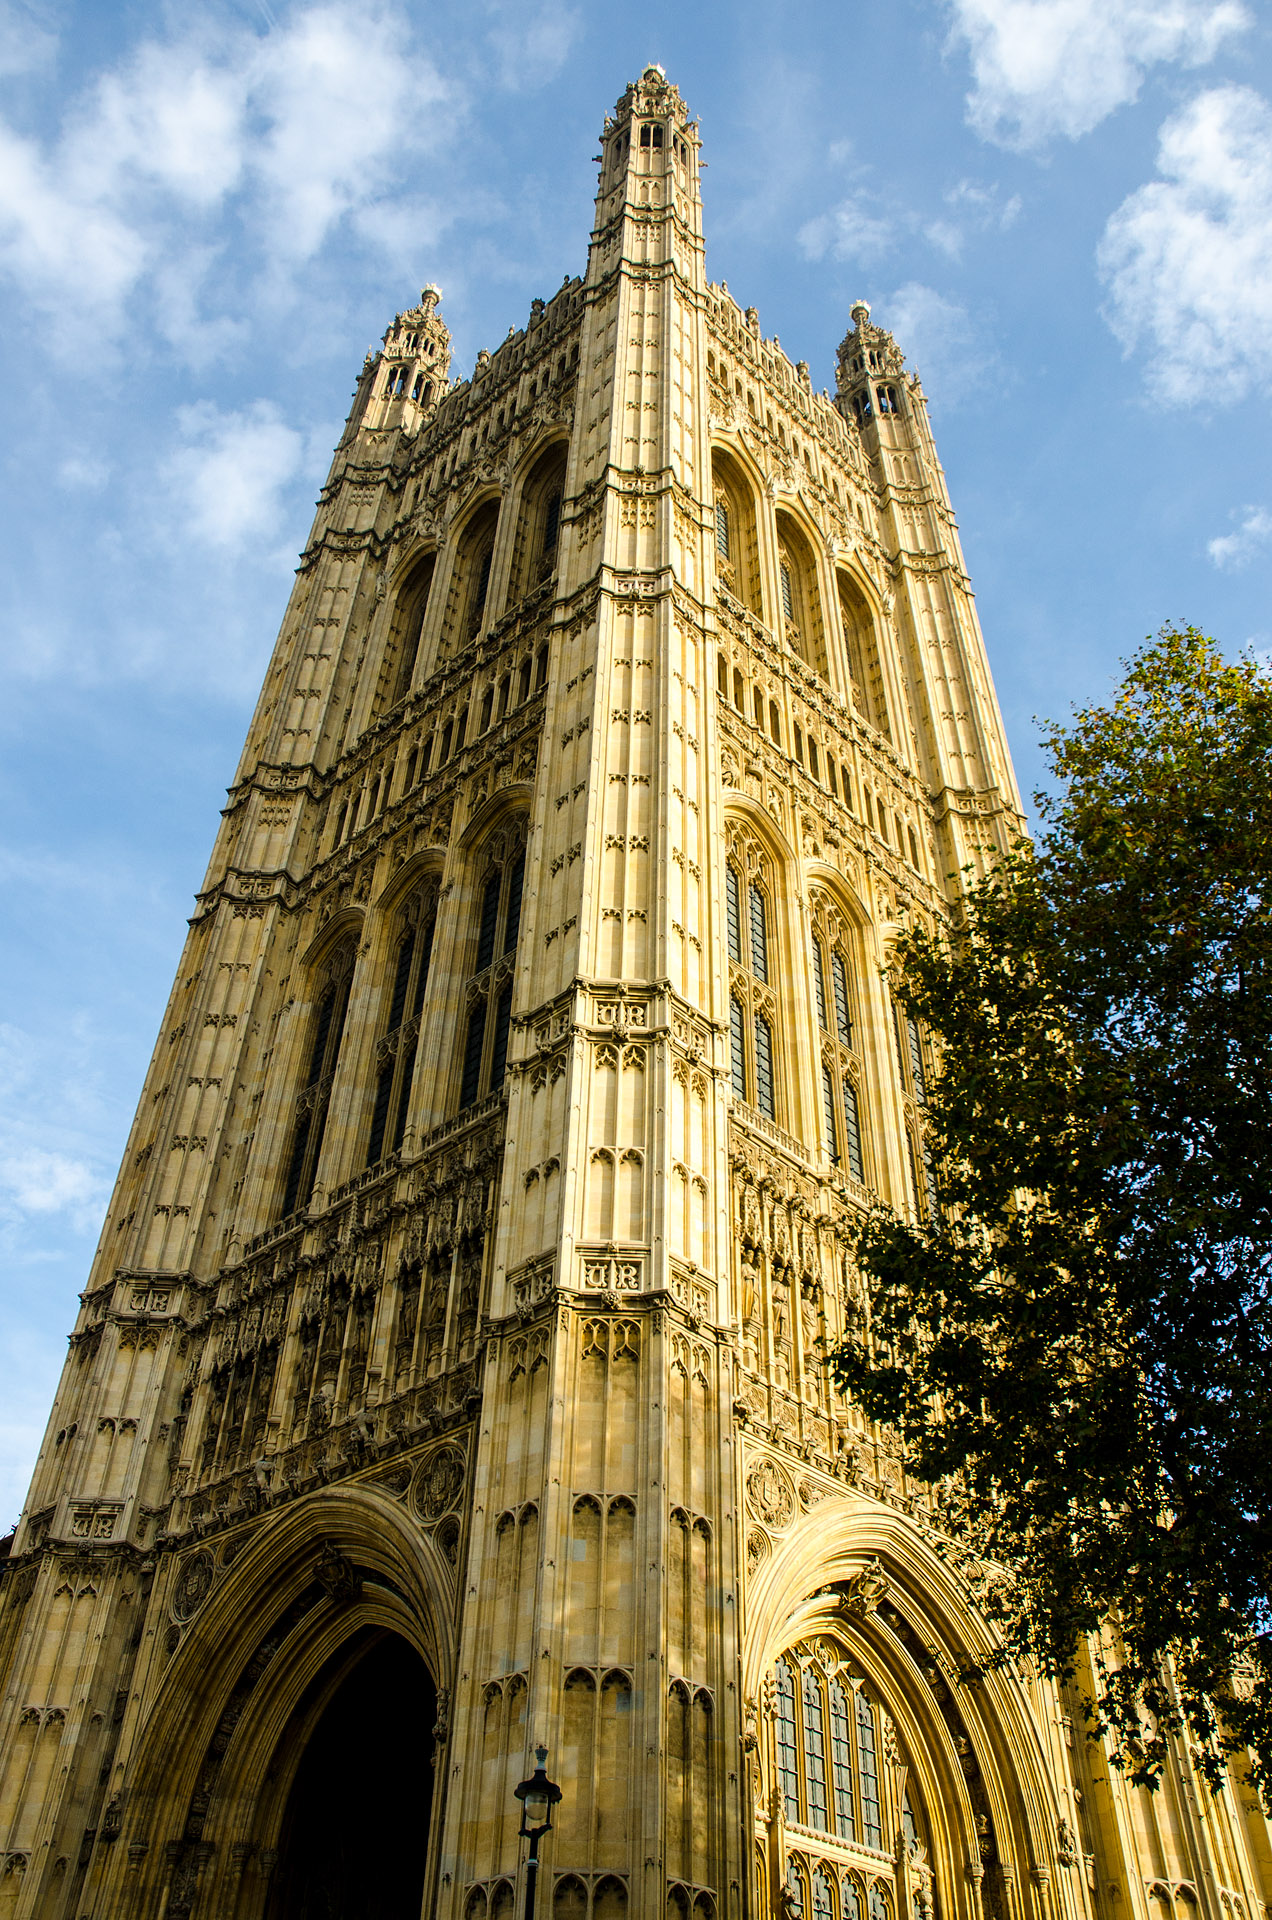 Victoria Tower